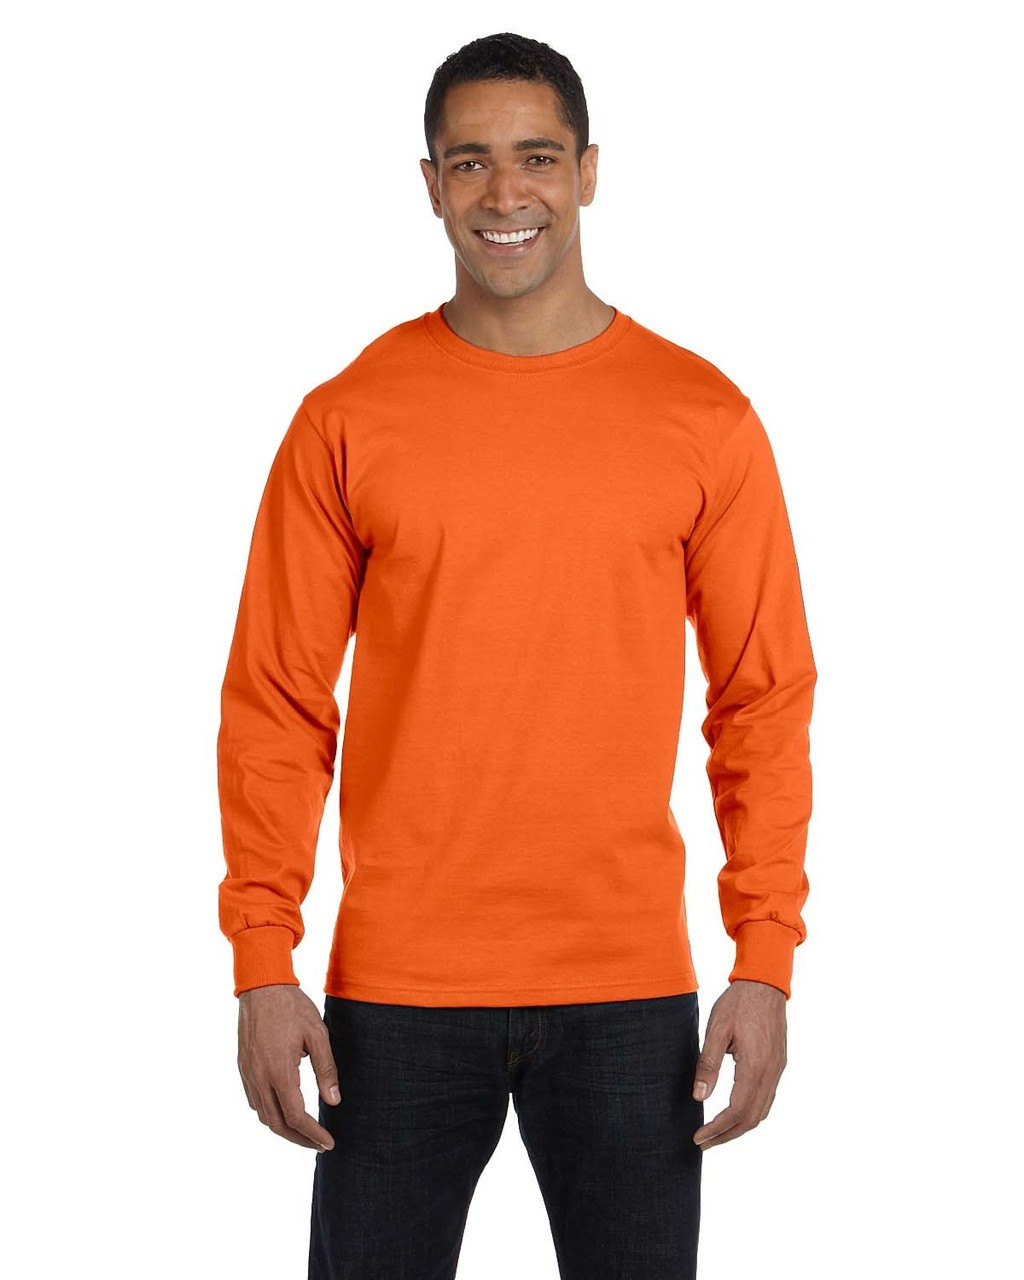 Orange - G840 Gildan DryBlend 50/50 Long Sleeve T-Shirt | Blankclothing.ca